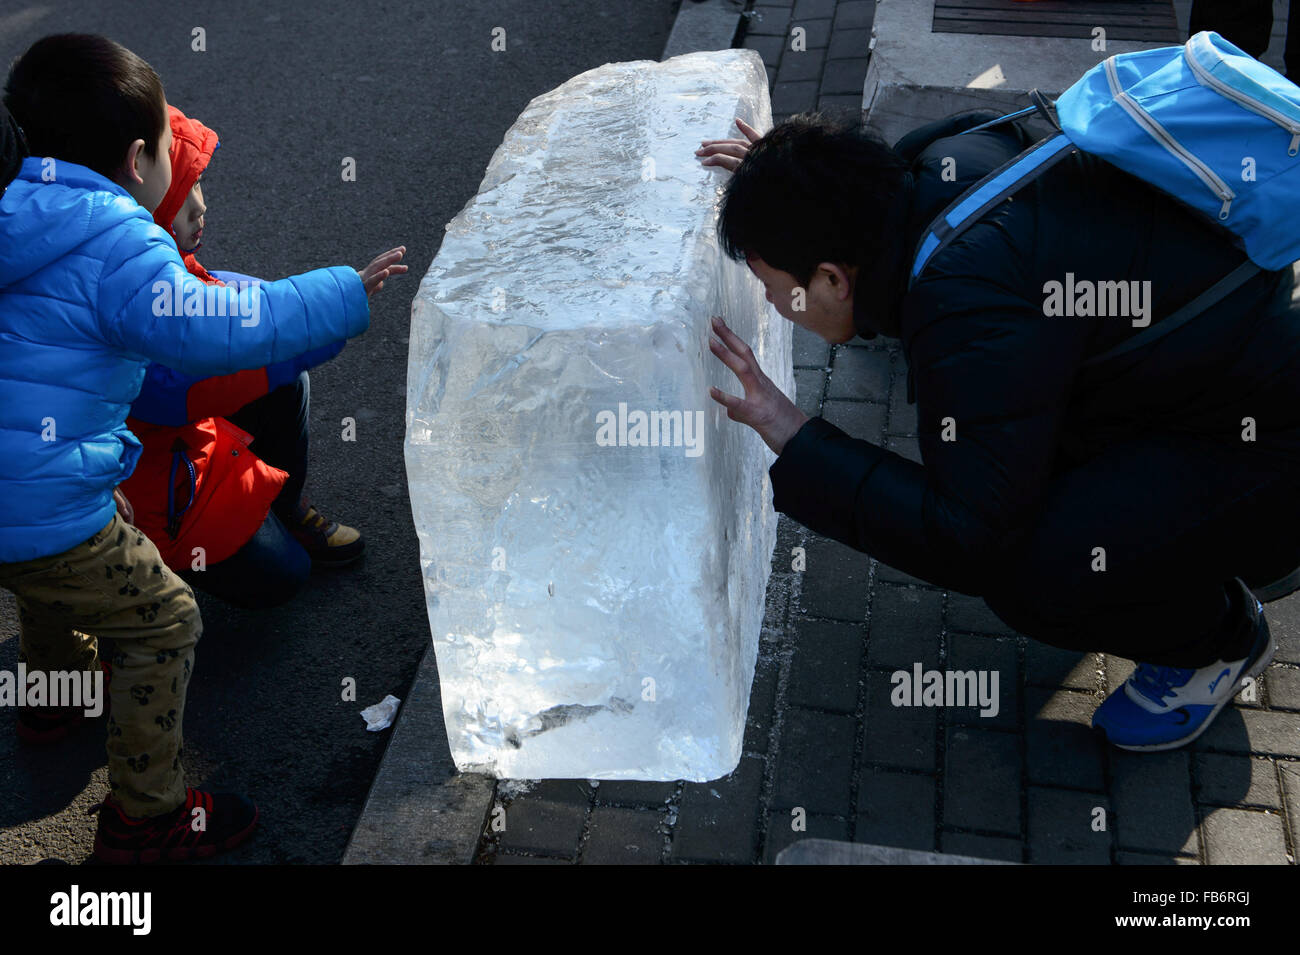 Beijing, China. 9th Jan, 2015. People watch an ice brick got from a lake at Shichahai, a scenic area in Beijing, - Stock Image